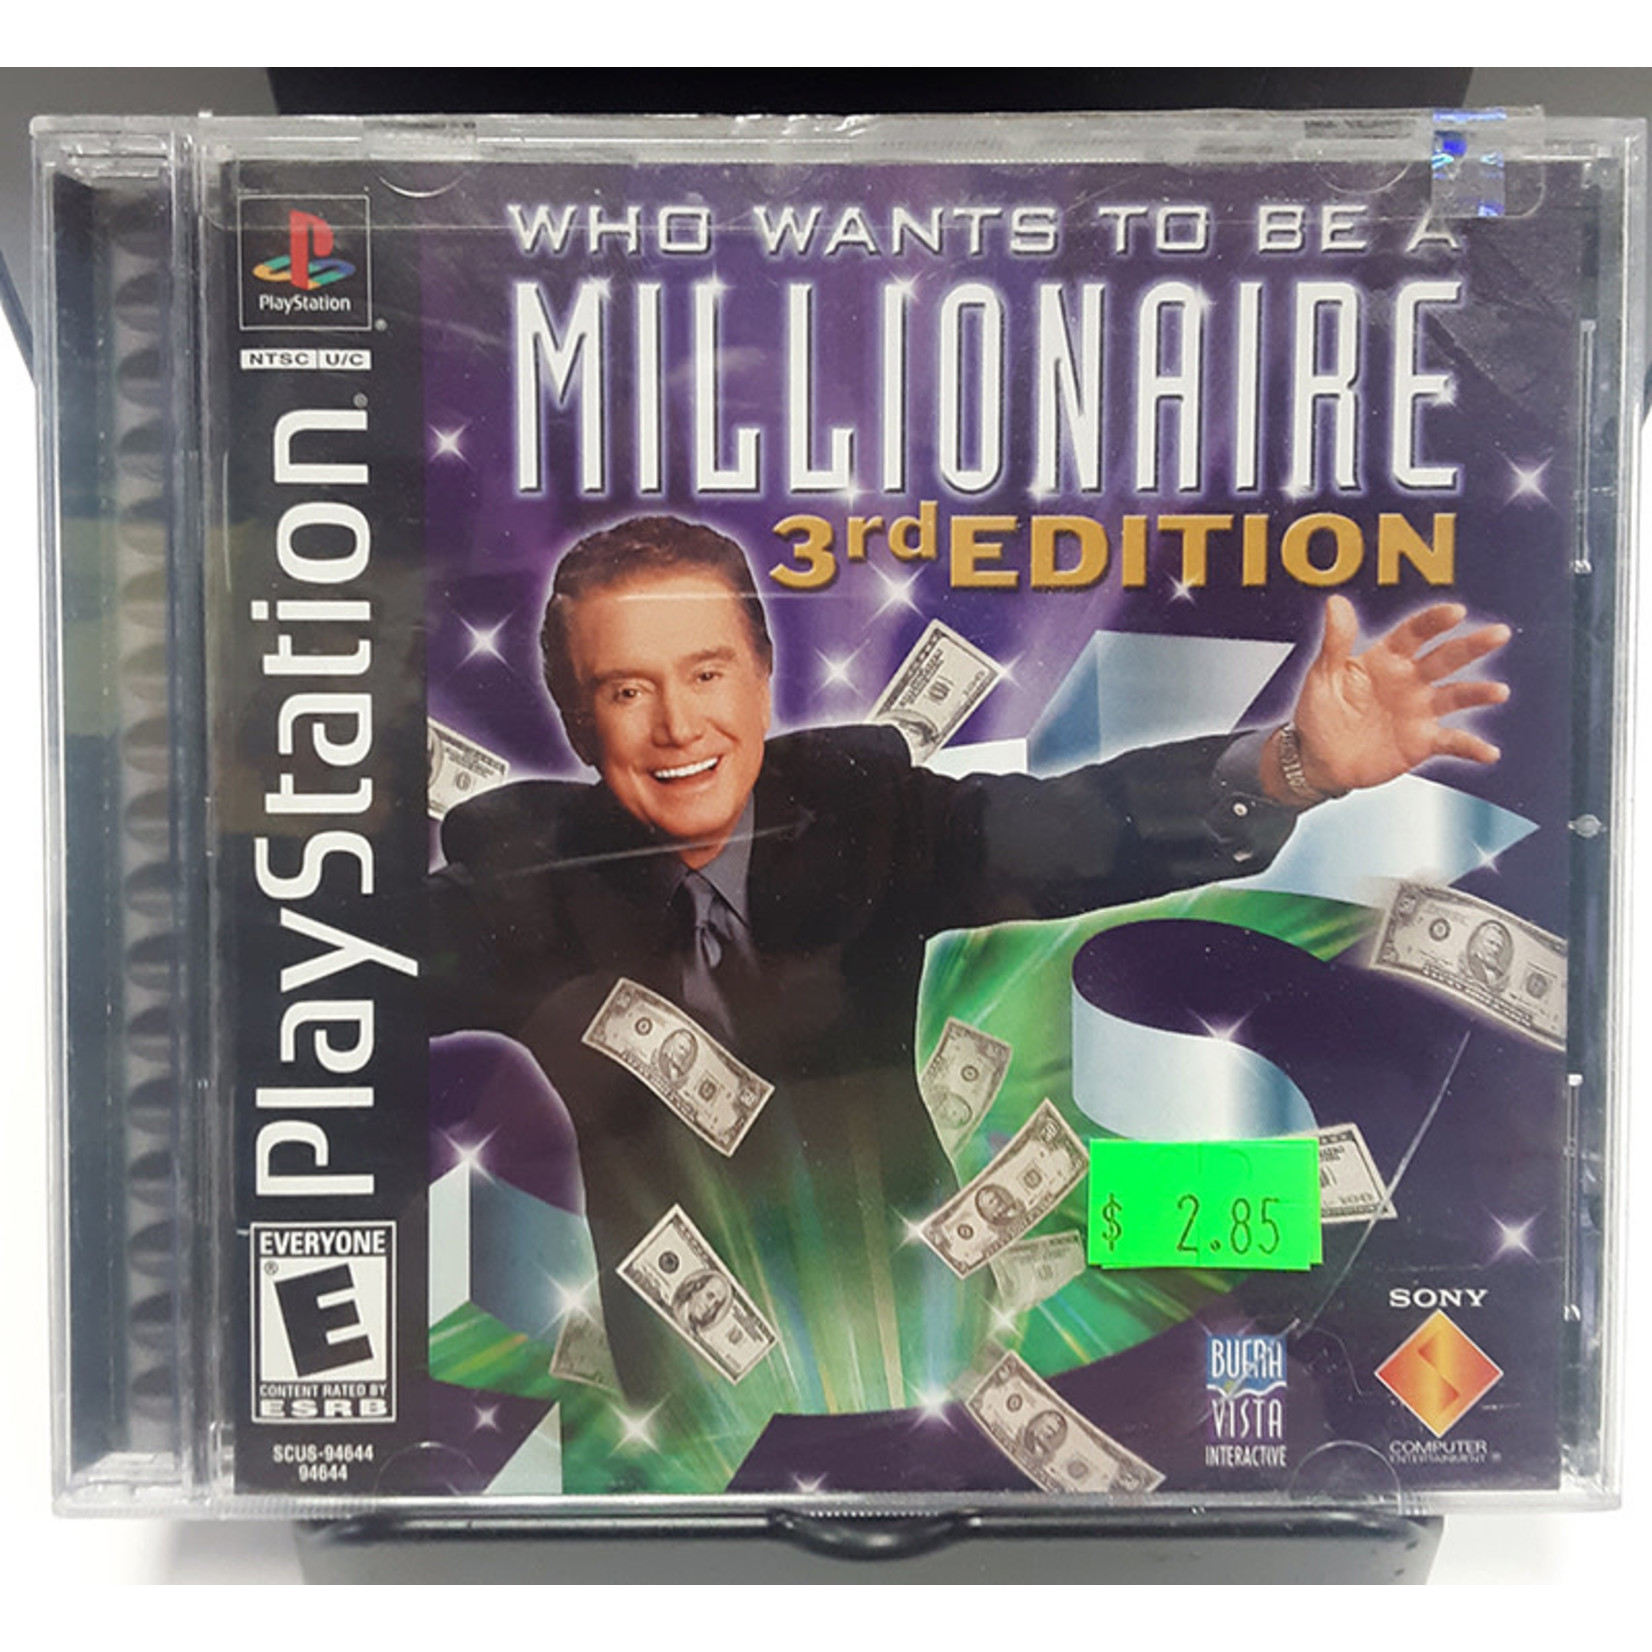 ps1u-who wants to be a millionaire: 3rd edition